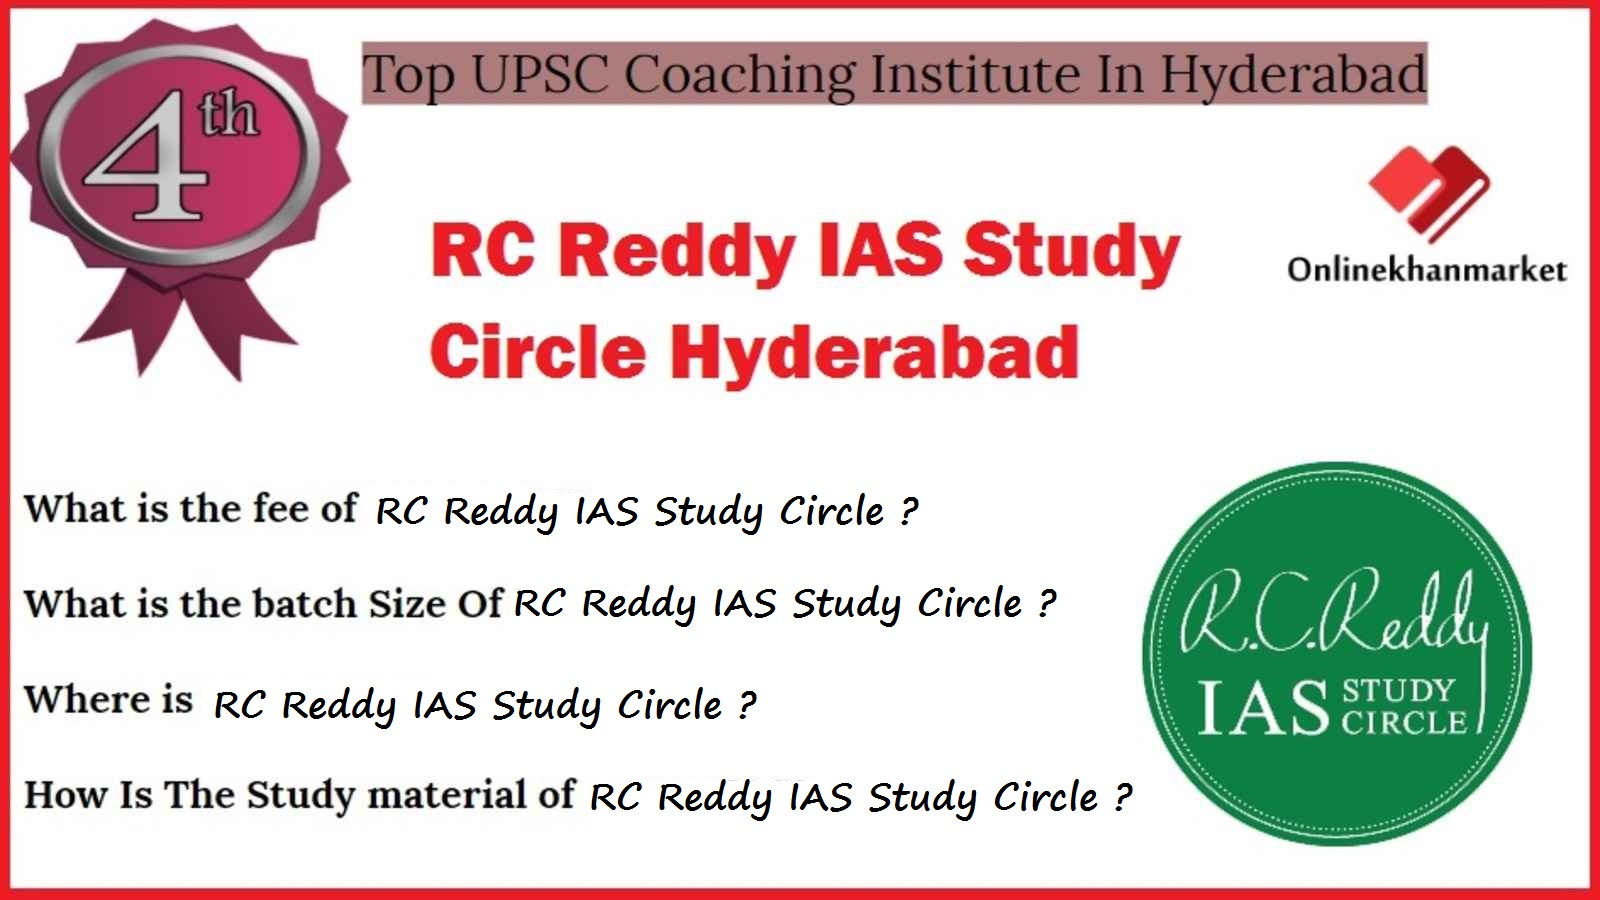 UPSC Coaching in Hyderabad